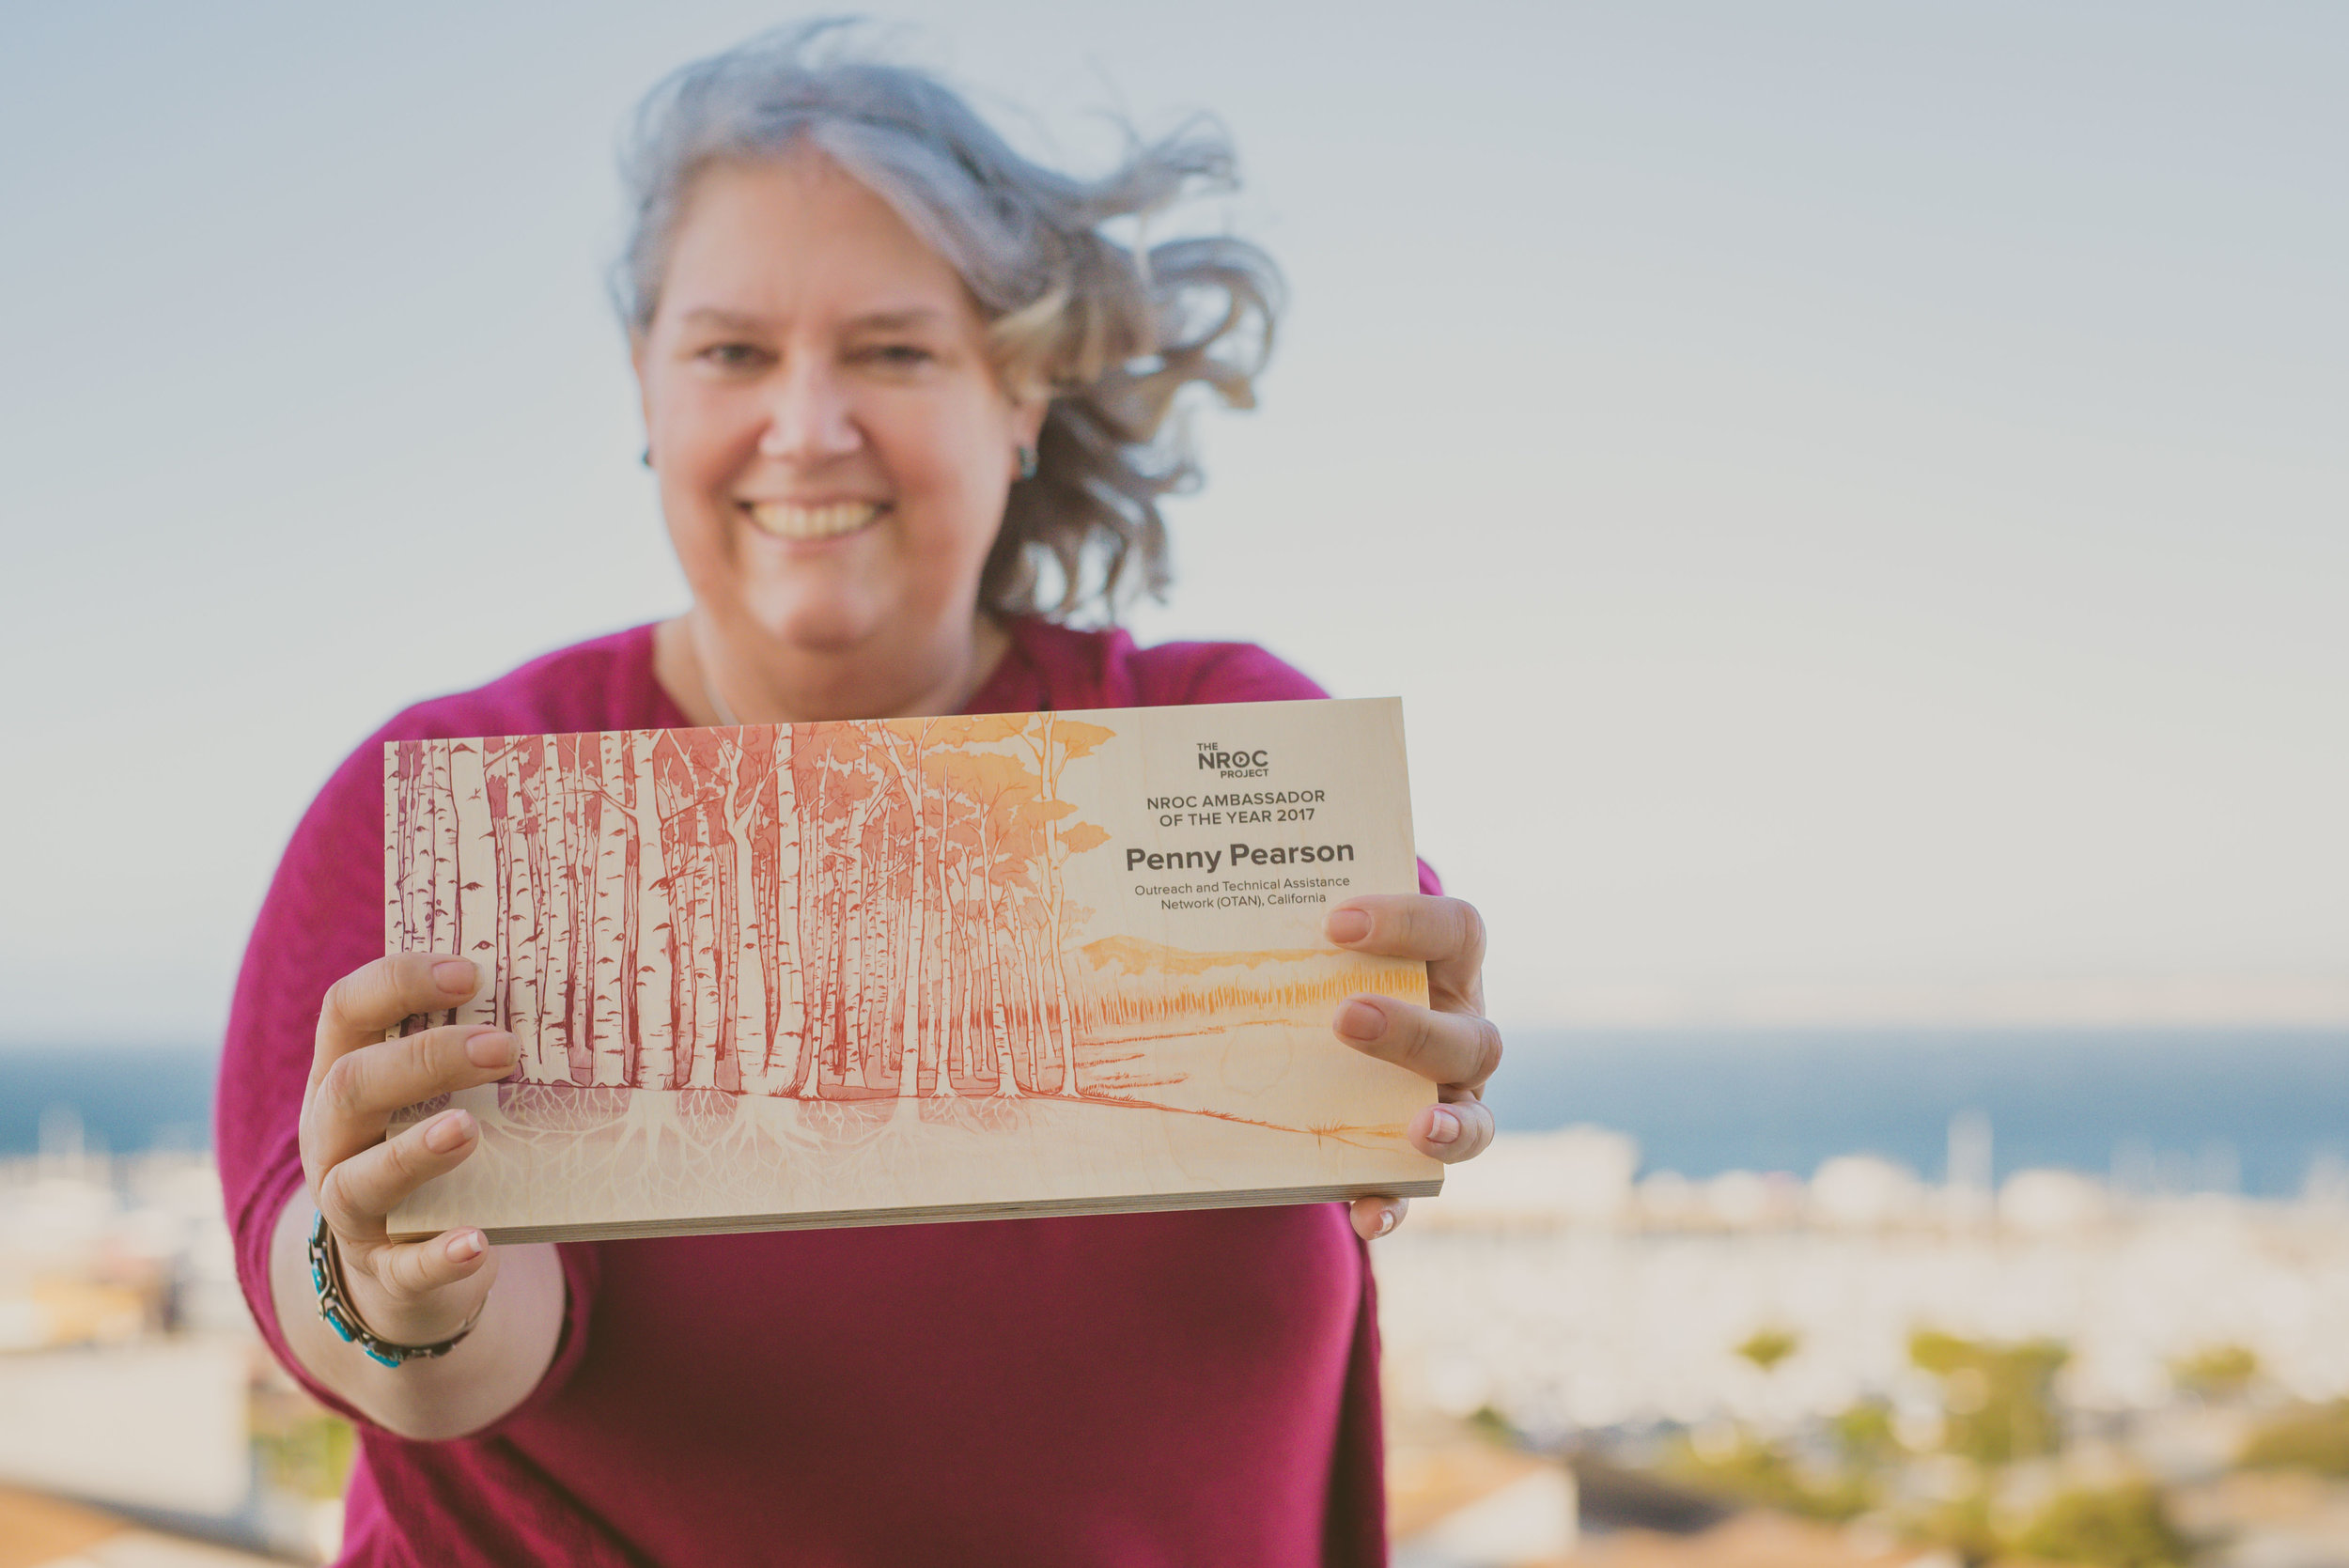 2017 Ambassador award winner and California Adult Education professional, Penny Pearson proudly displays her award featuring the Networked for Change aspen illustration.